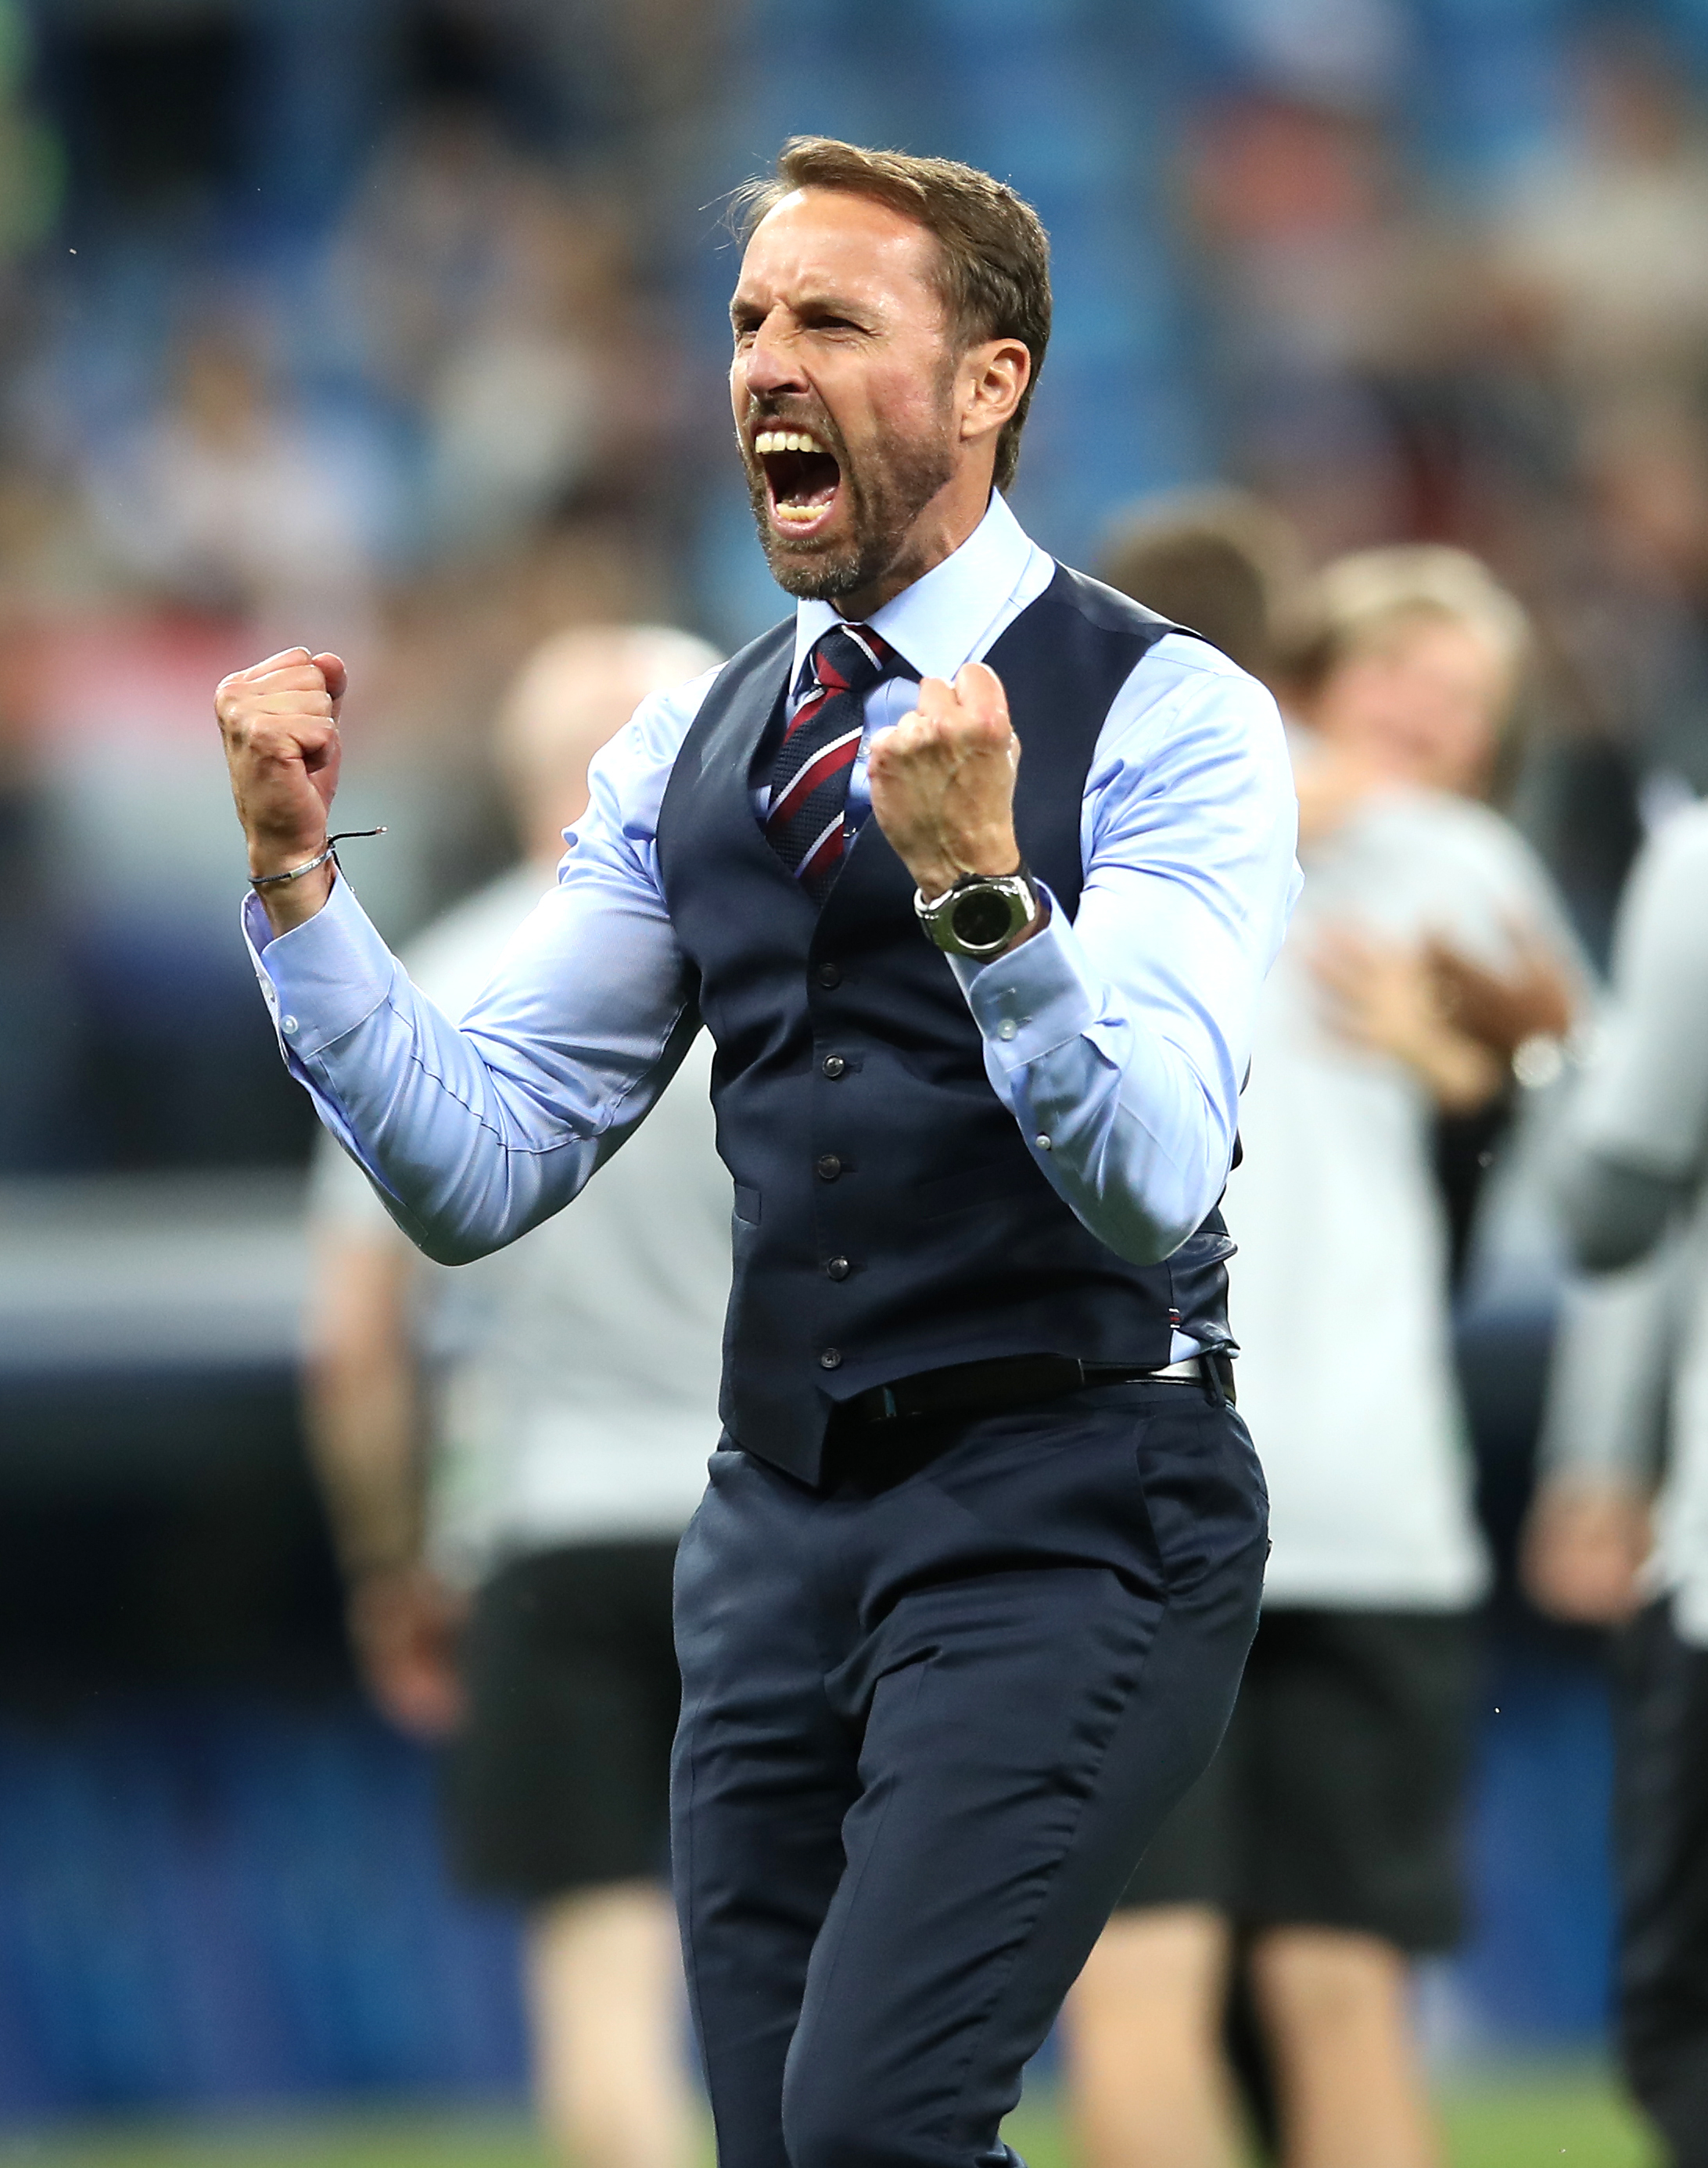 LEADER: Gareth Southgate celebrating a victory at this year's World Cup